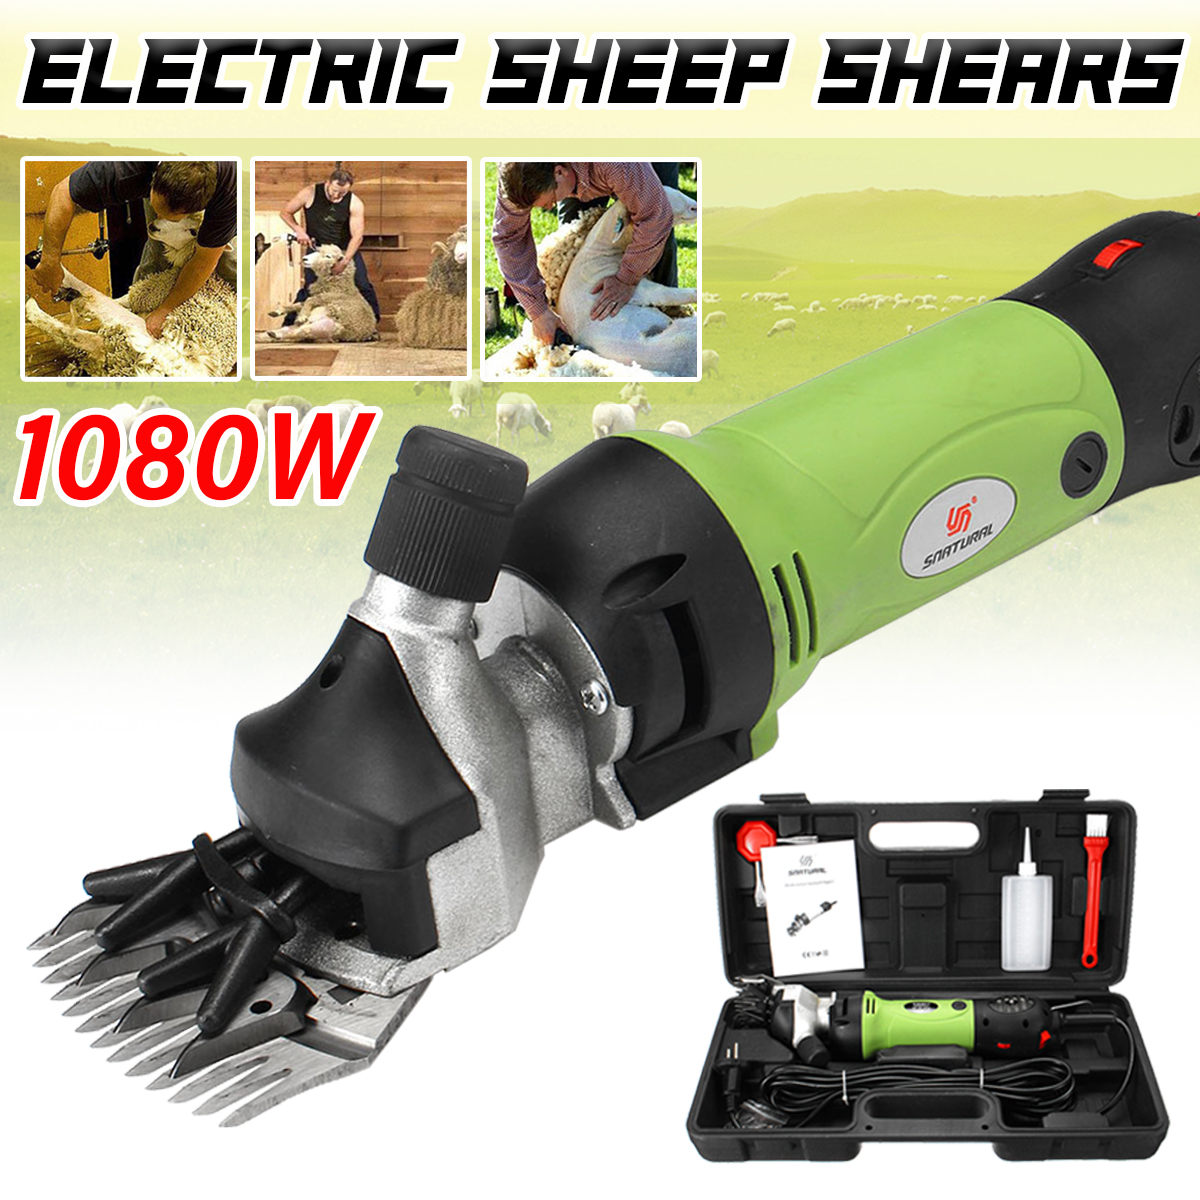 EU Plug Electric Shearing Clipper Shear Sheep Dog Pet Hair Clipper Adjustable 6Speeds Shearing Machine Farm Trimmer Scissor Tool image